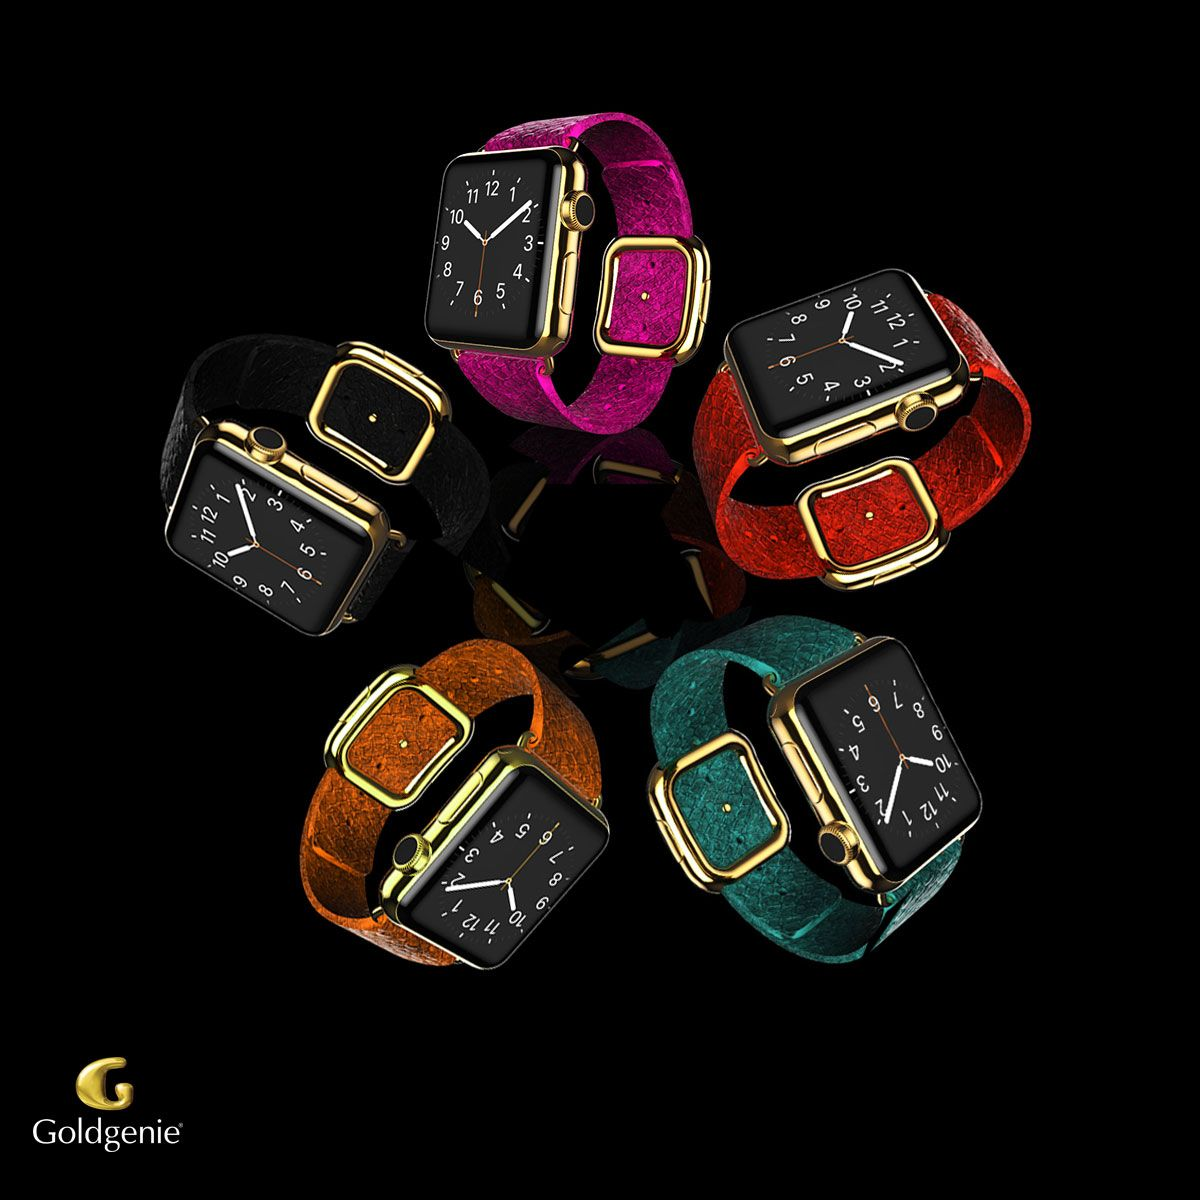 Goldgenie's 24k Gold Customised Apple Watch Collection is available to order here: http://www.goldgenie.com/24k-gold-apple-watch.php